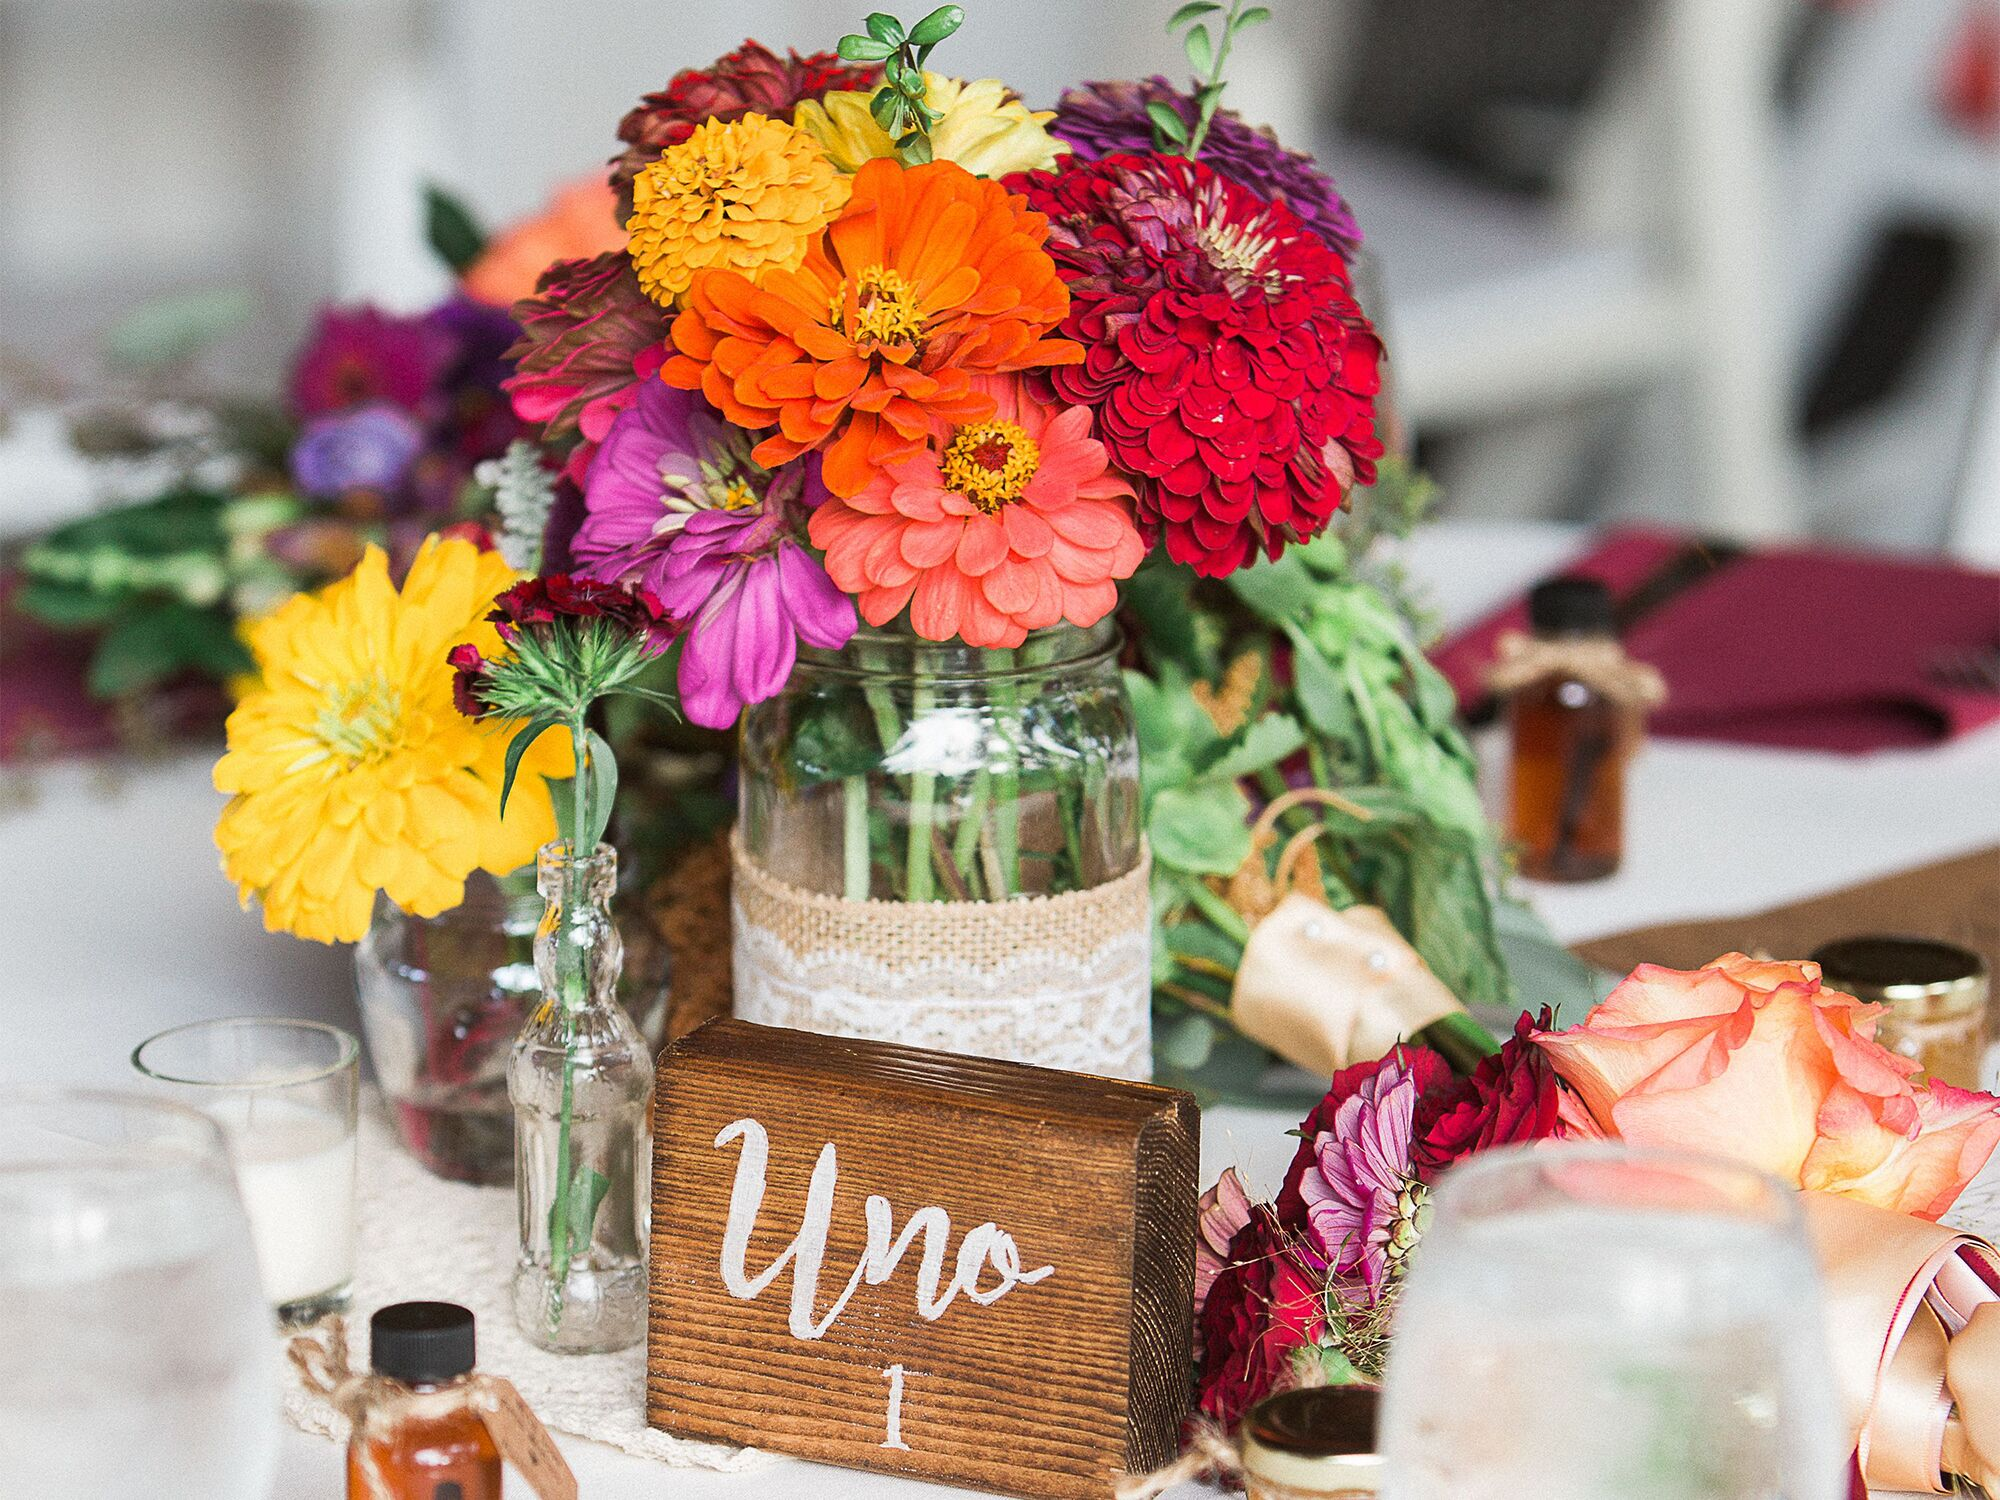 Wedding Flowers: Symbolic Meanings of Flowers